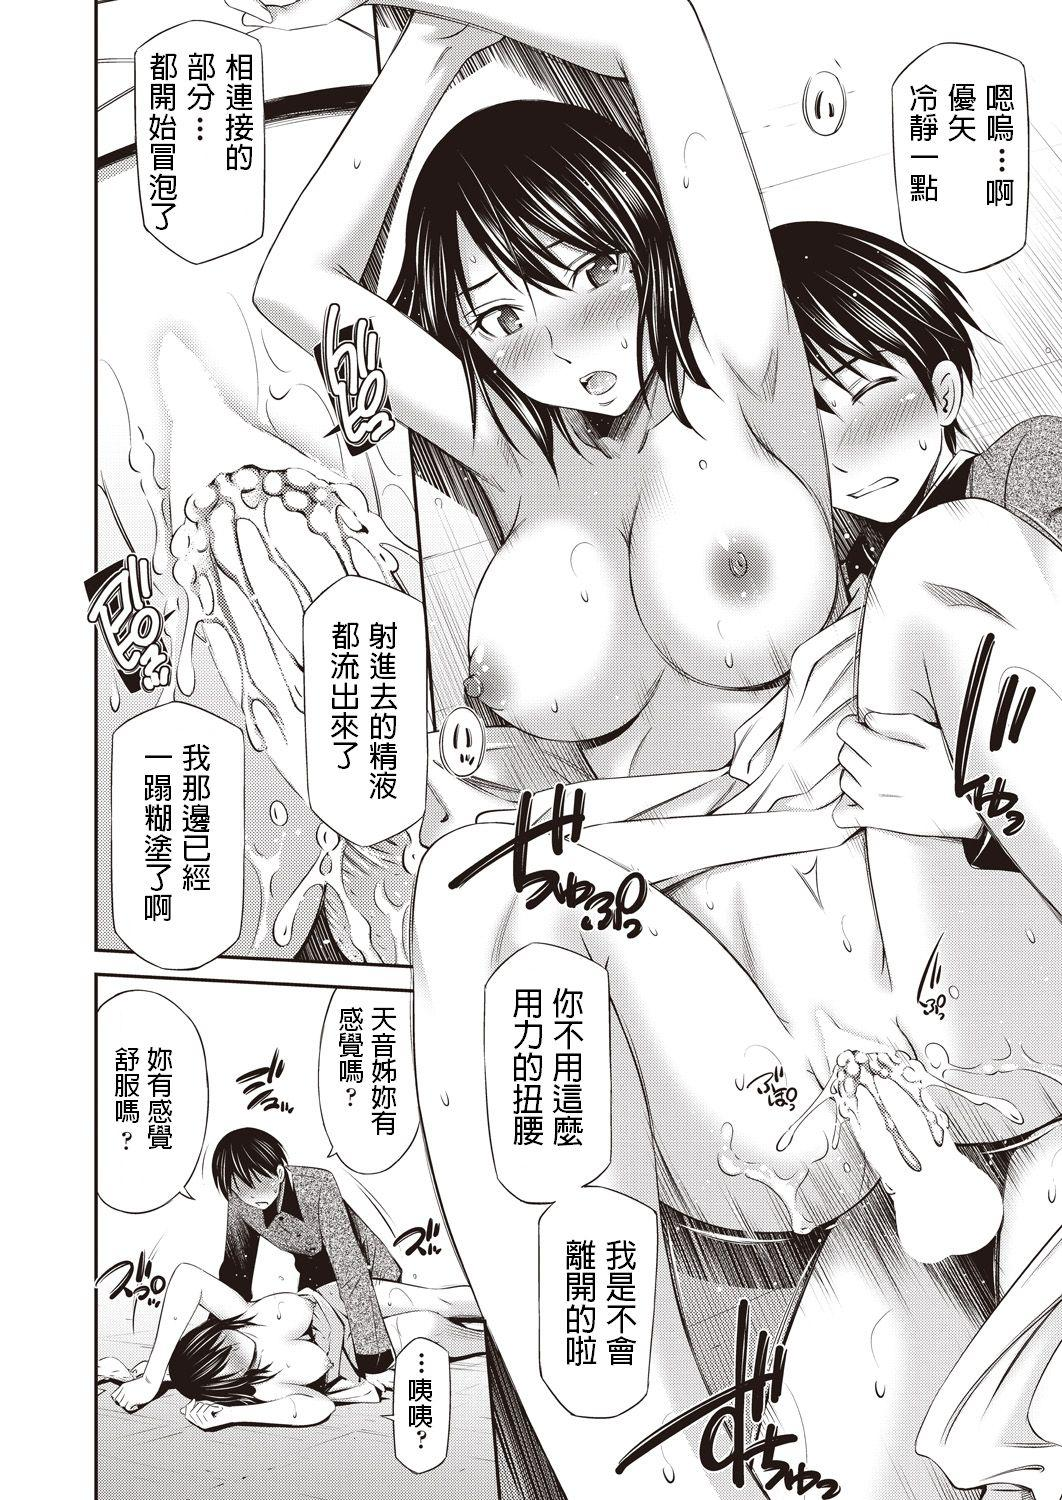 Tenshi no Gohoubi - Angel's Reward 17